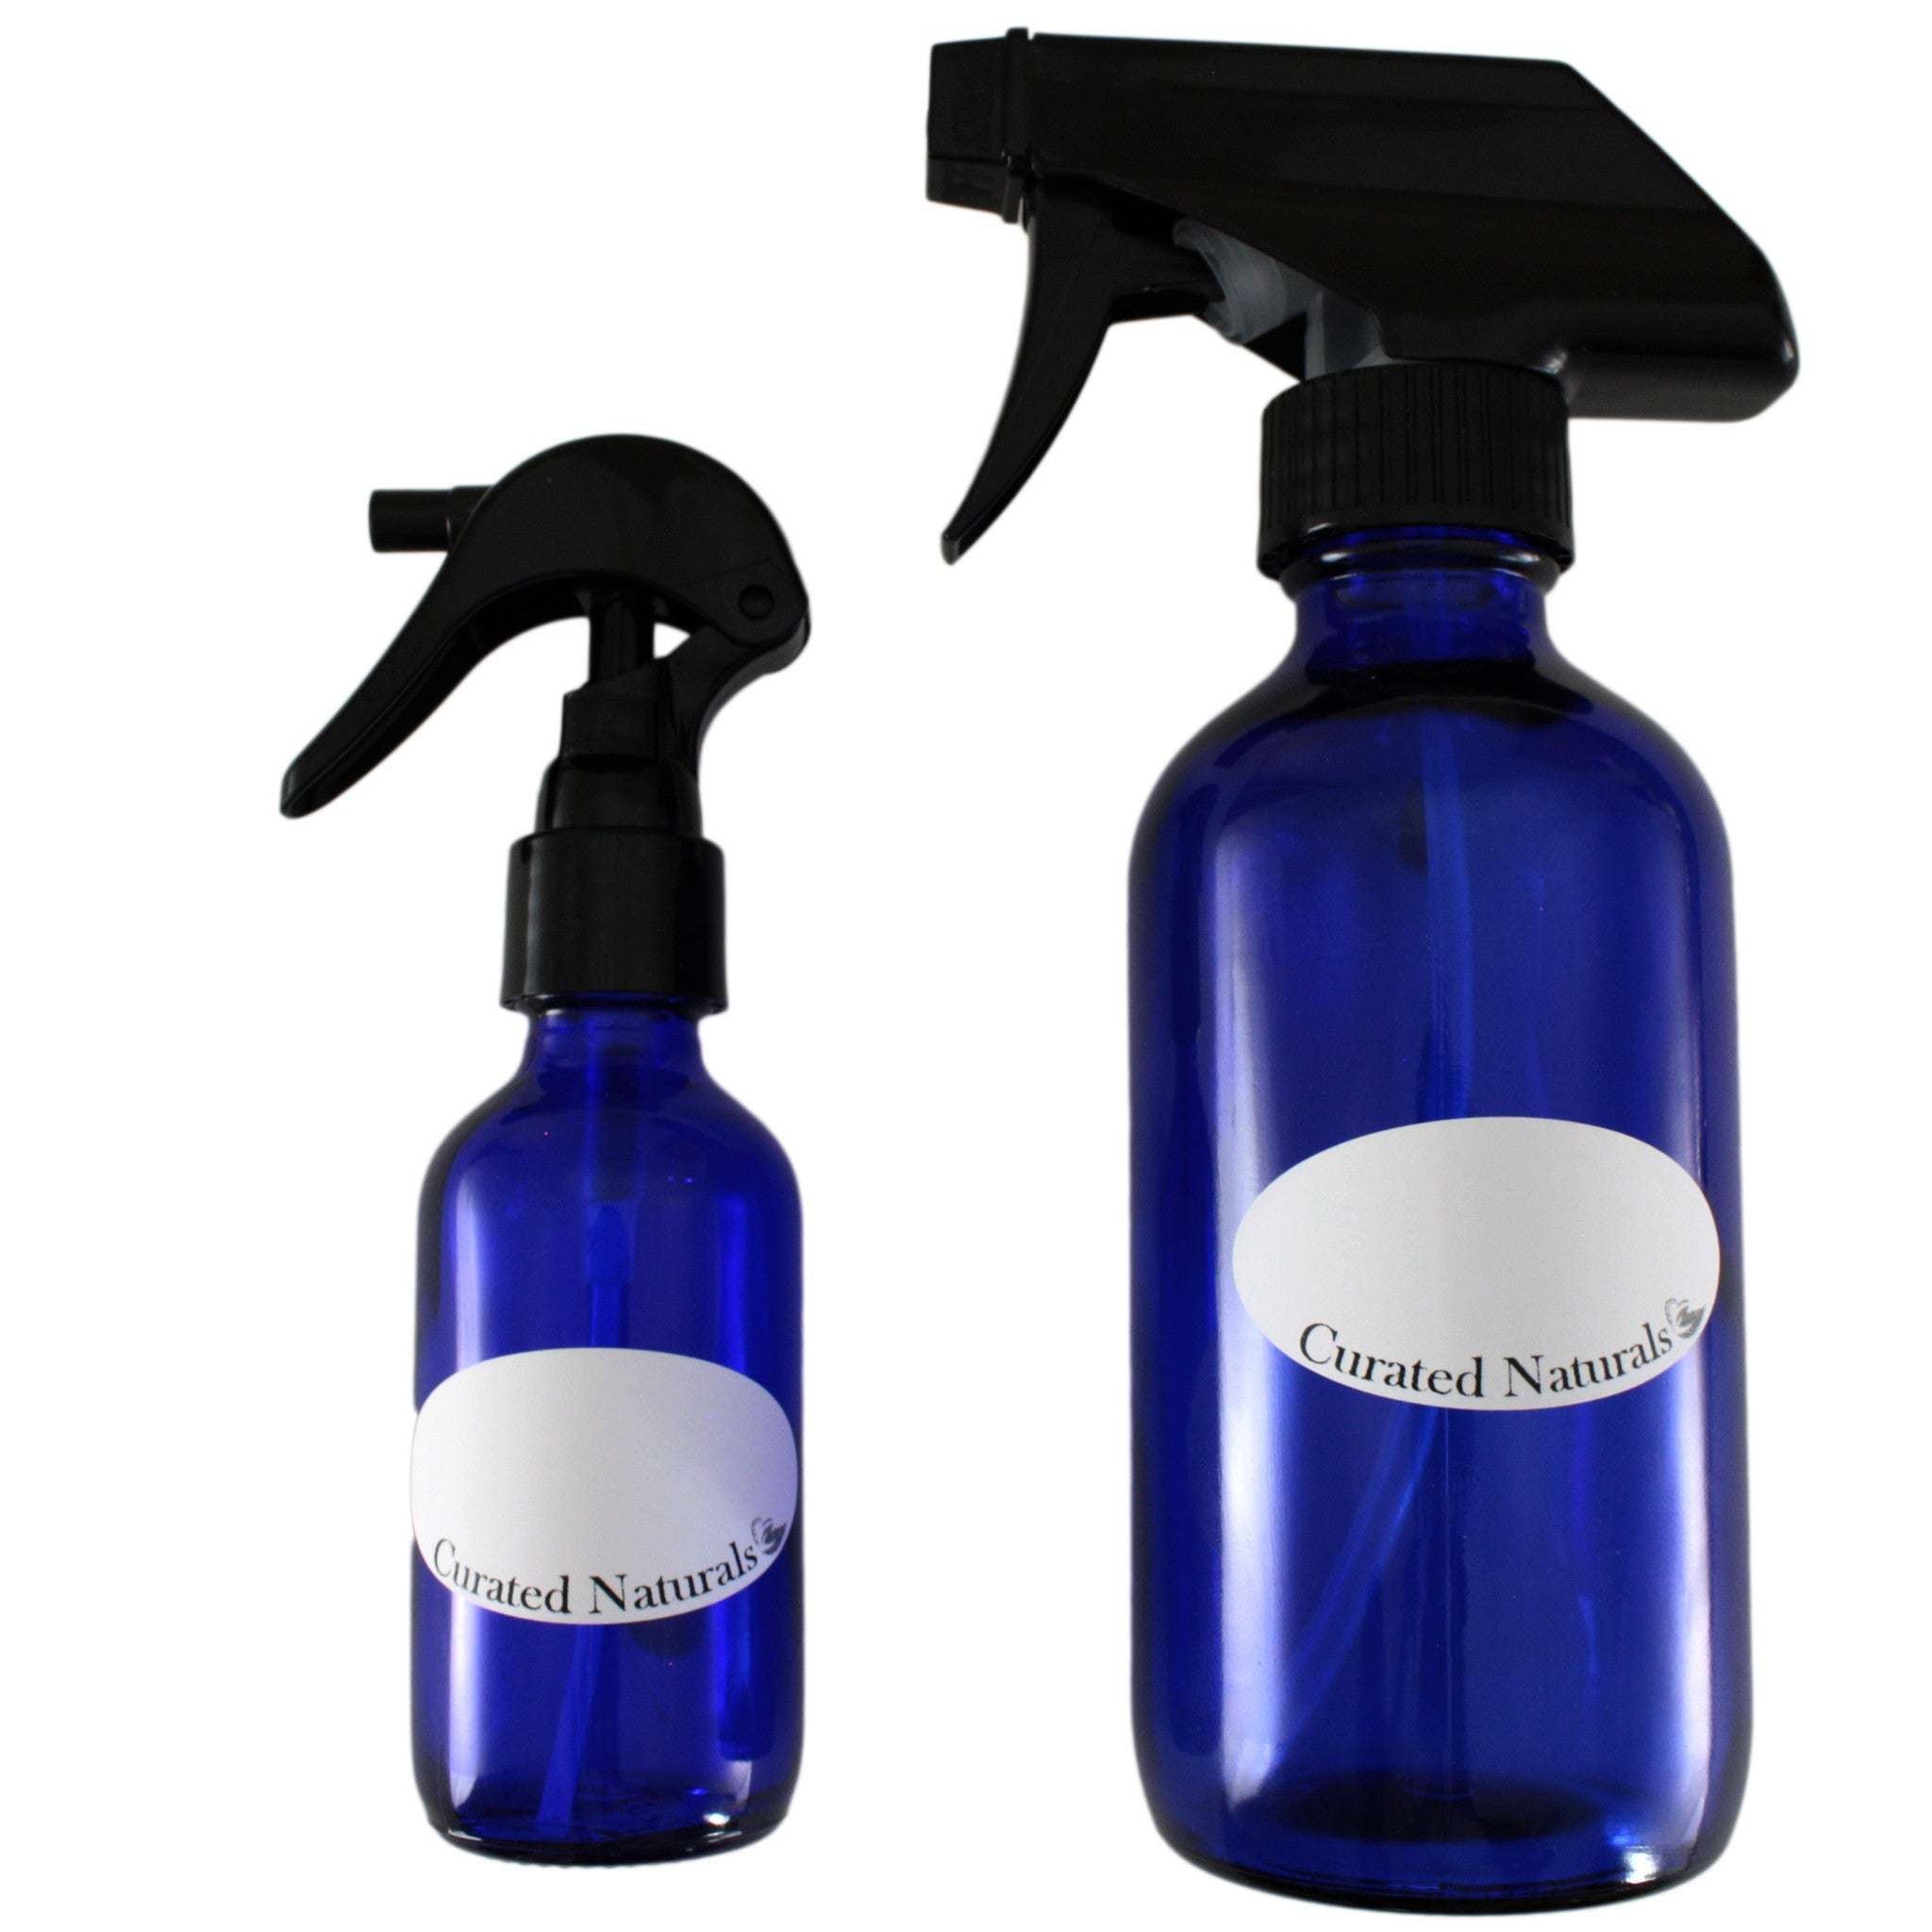 b1987a656f75 High Quality Essential Oil blue glass Spray Bottles two pack. 2 ounce, 8  ounce